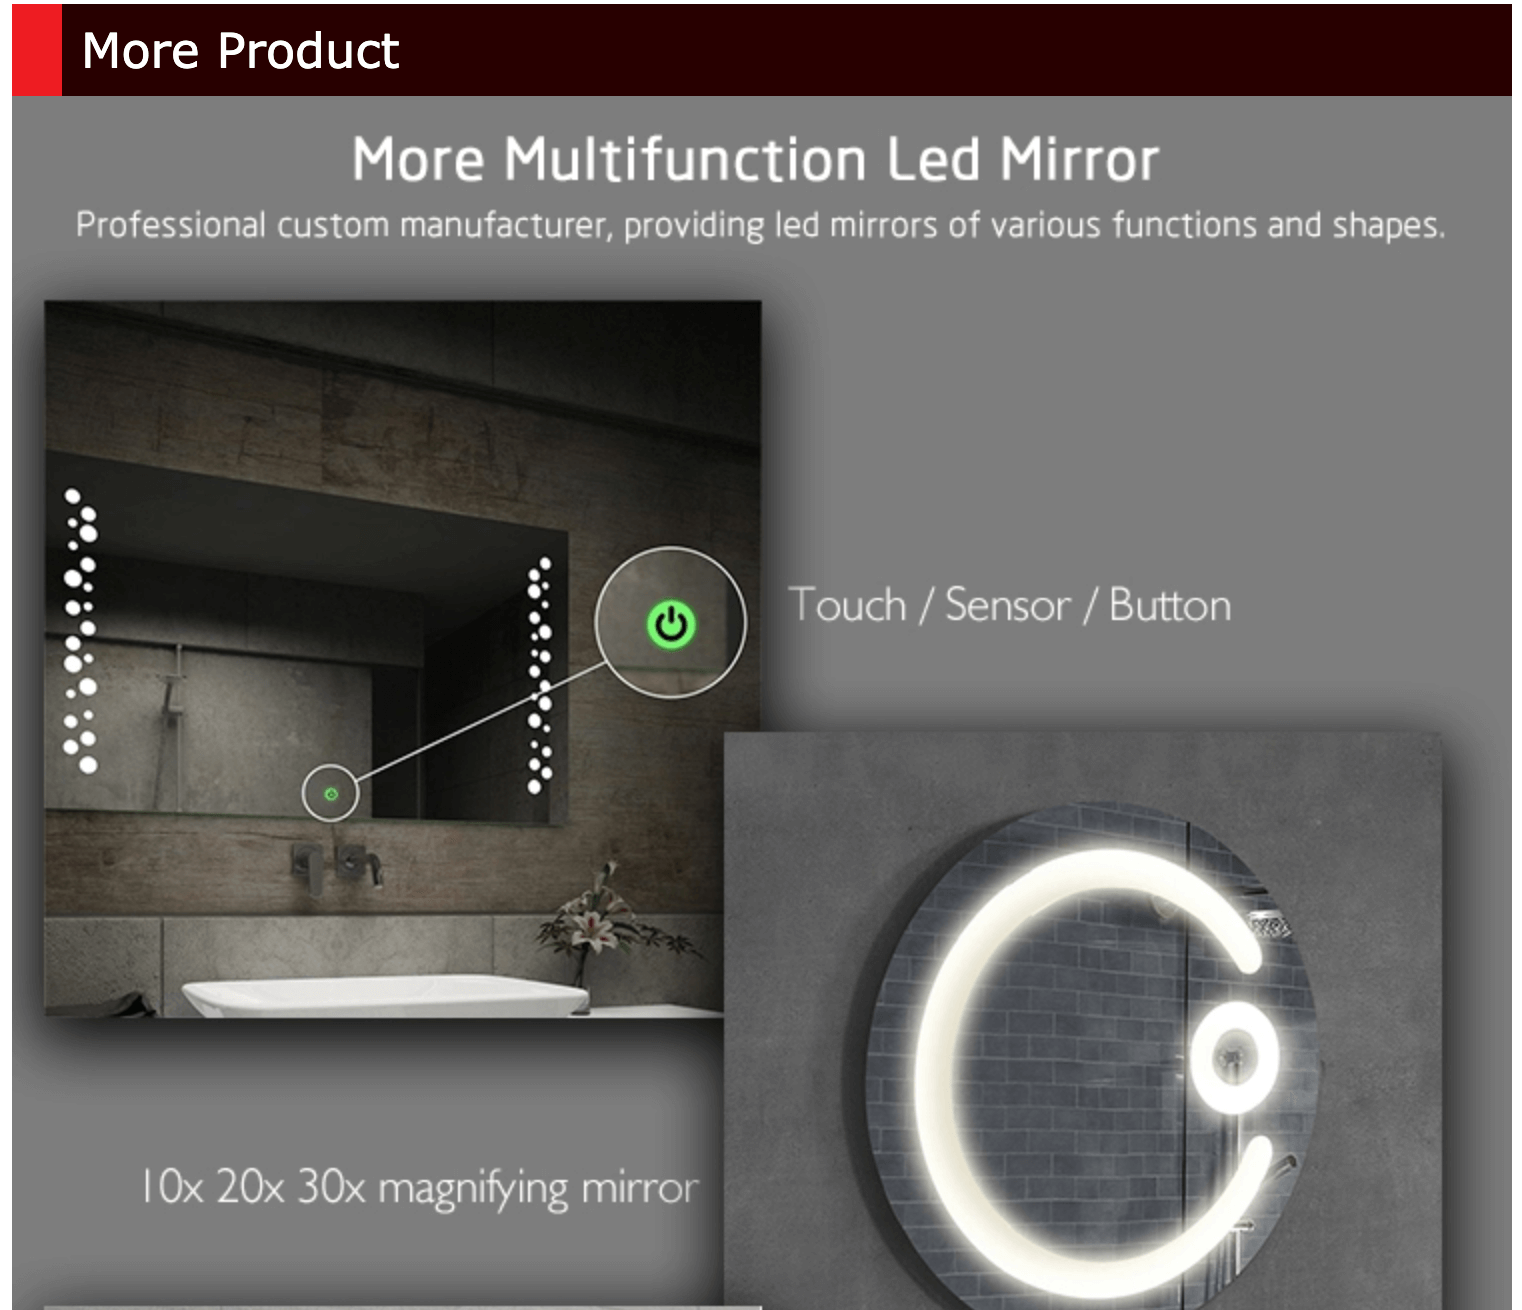 Wall Mirror Manufacturer products details